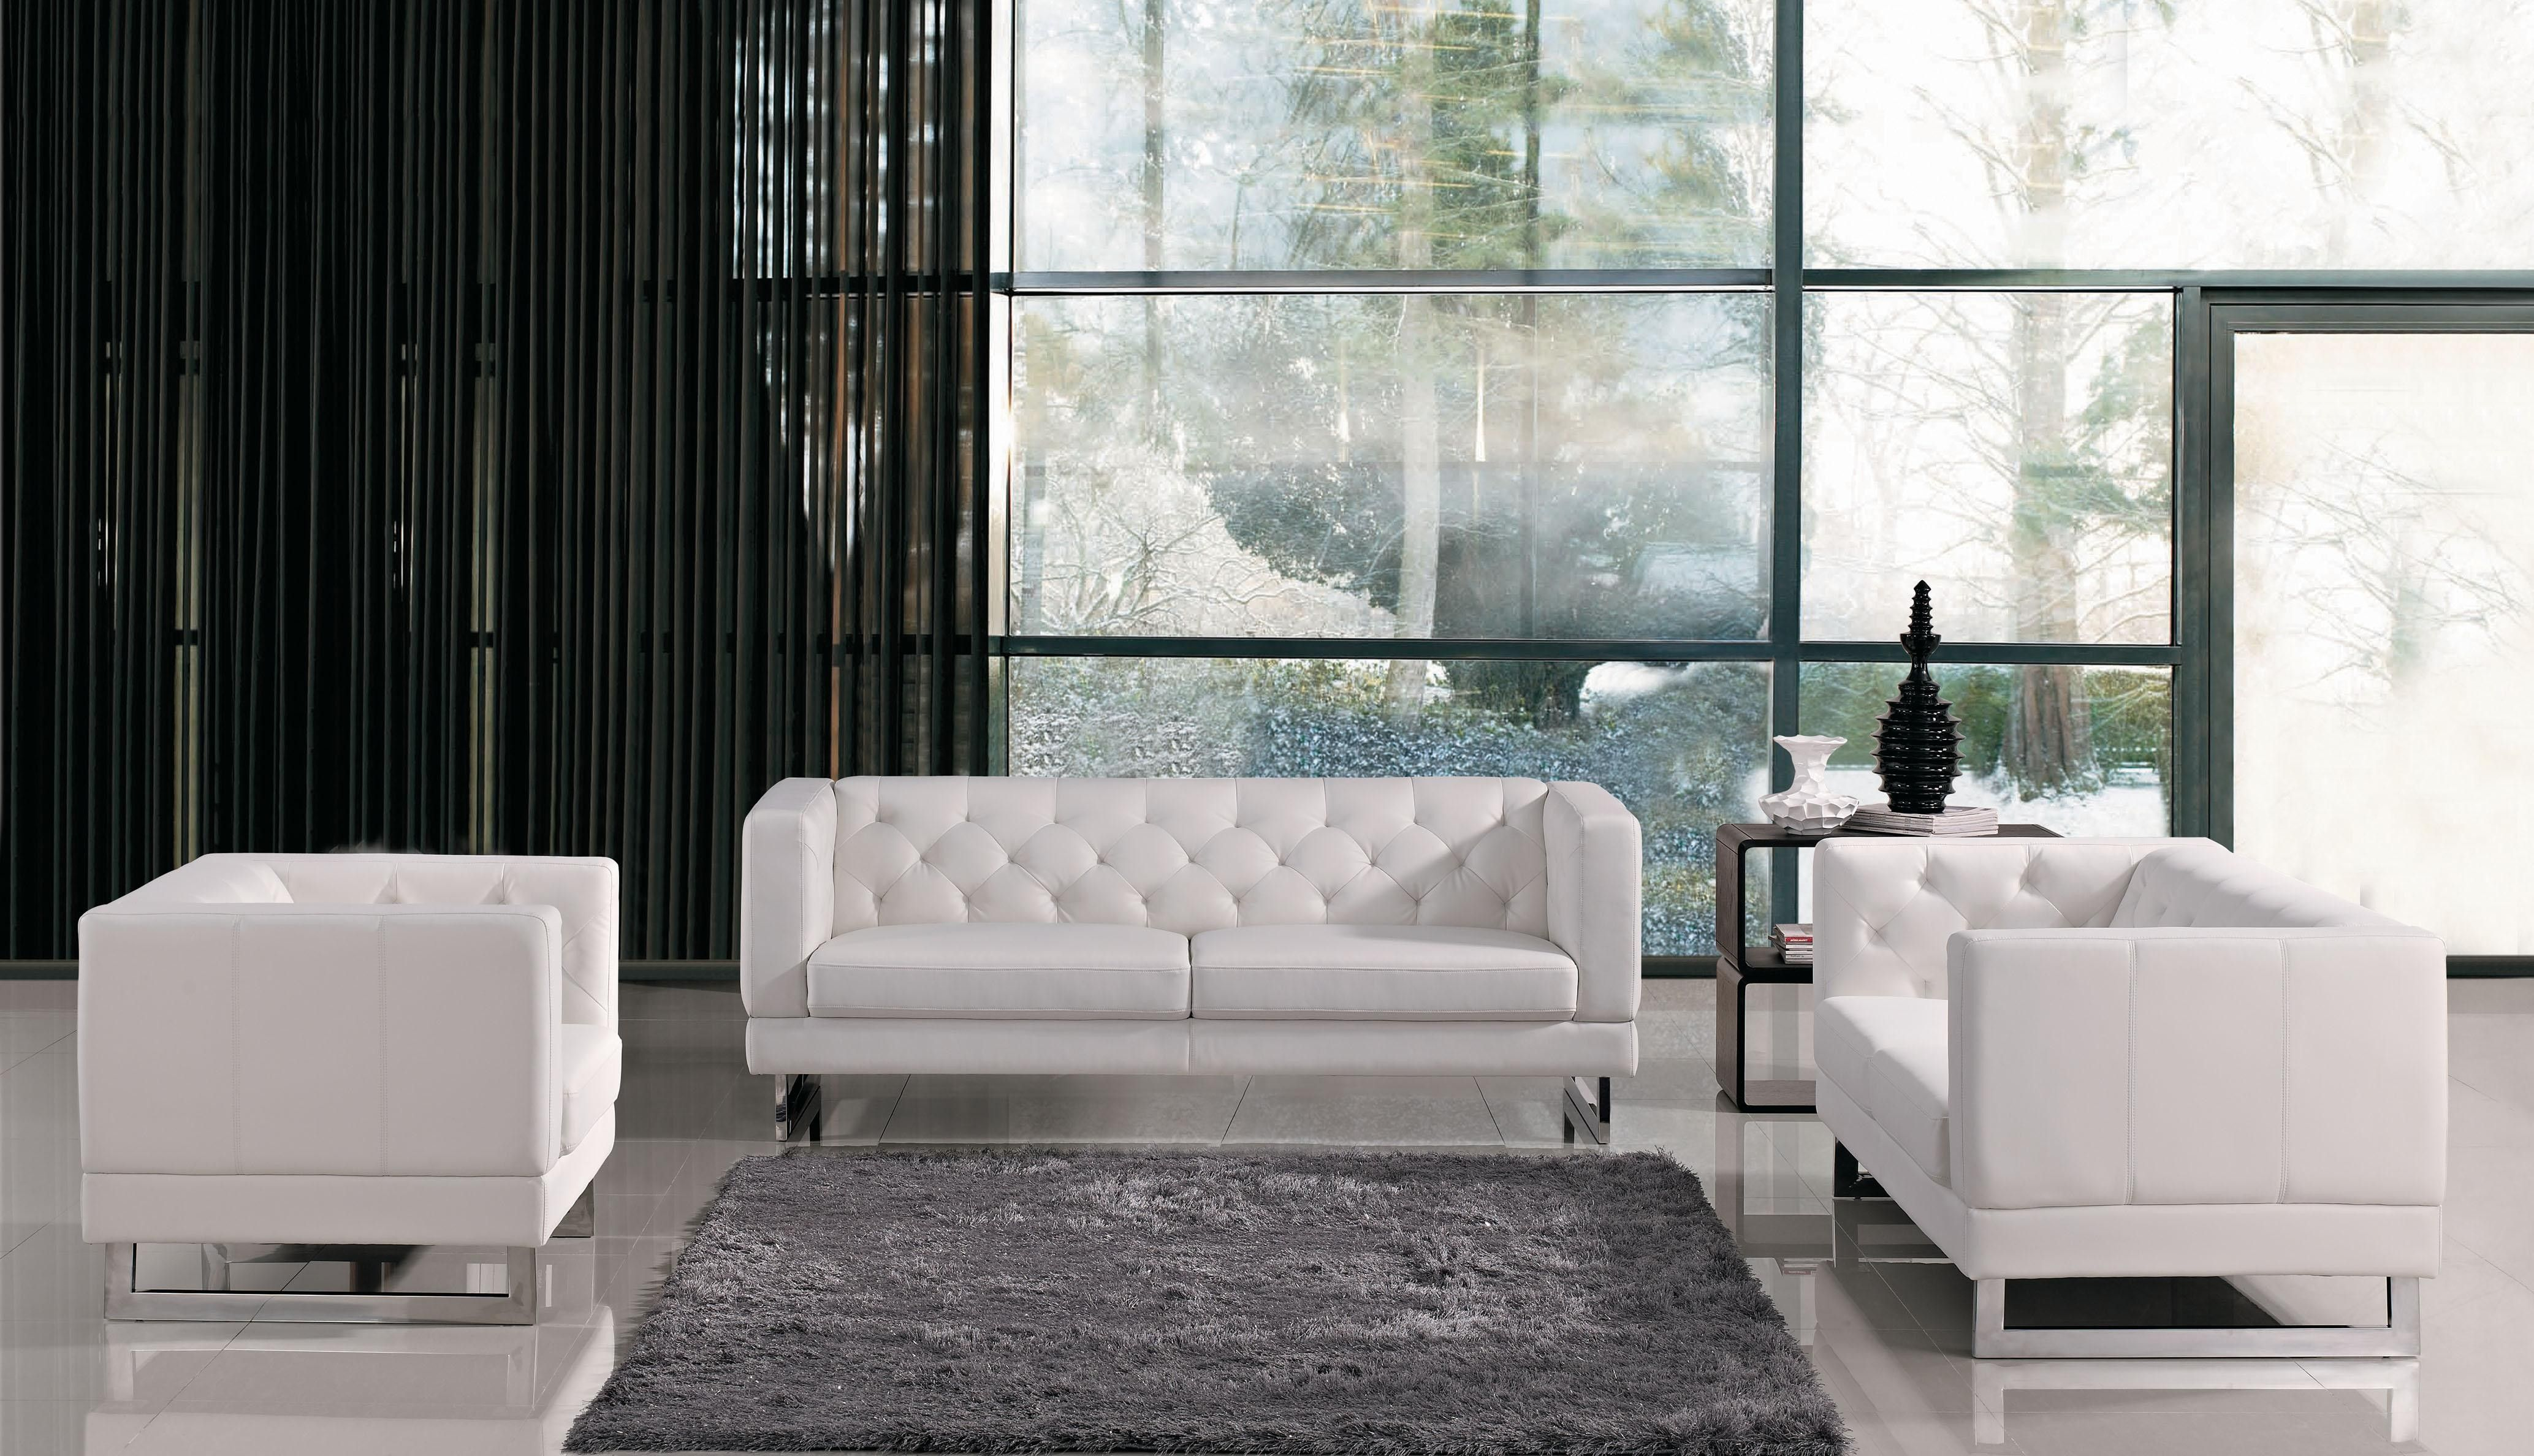 give furniture sofa leather dark living livings couch rooms an your corner brown a look elegant with room white